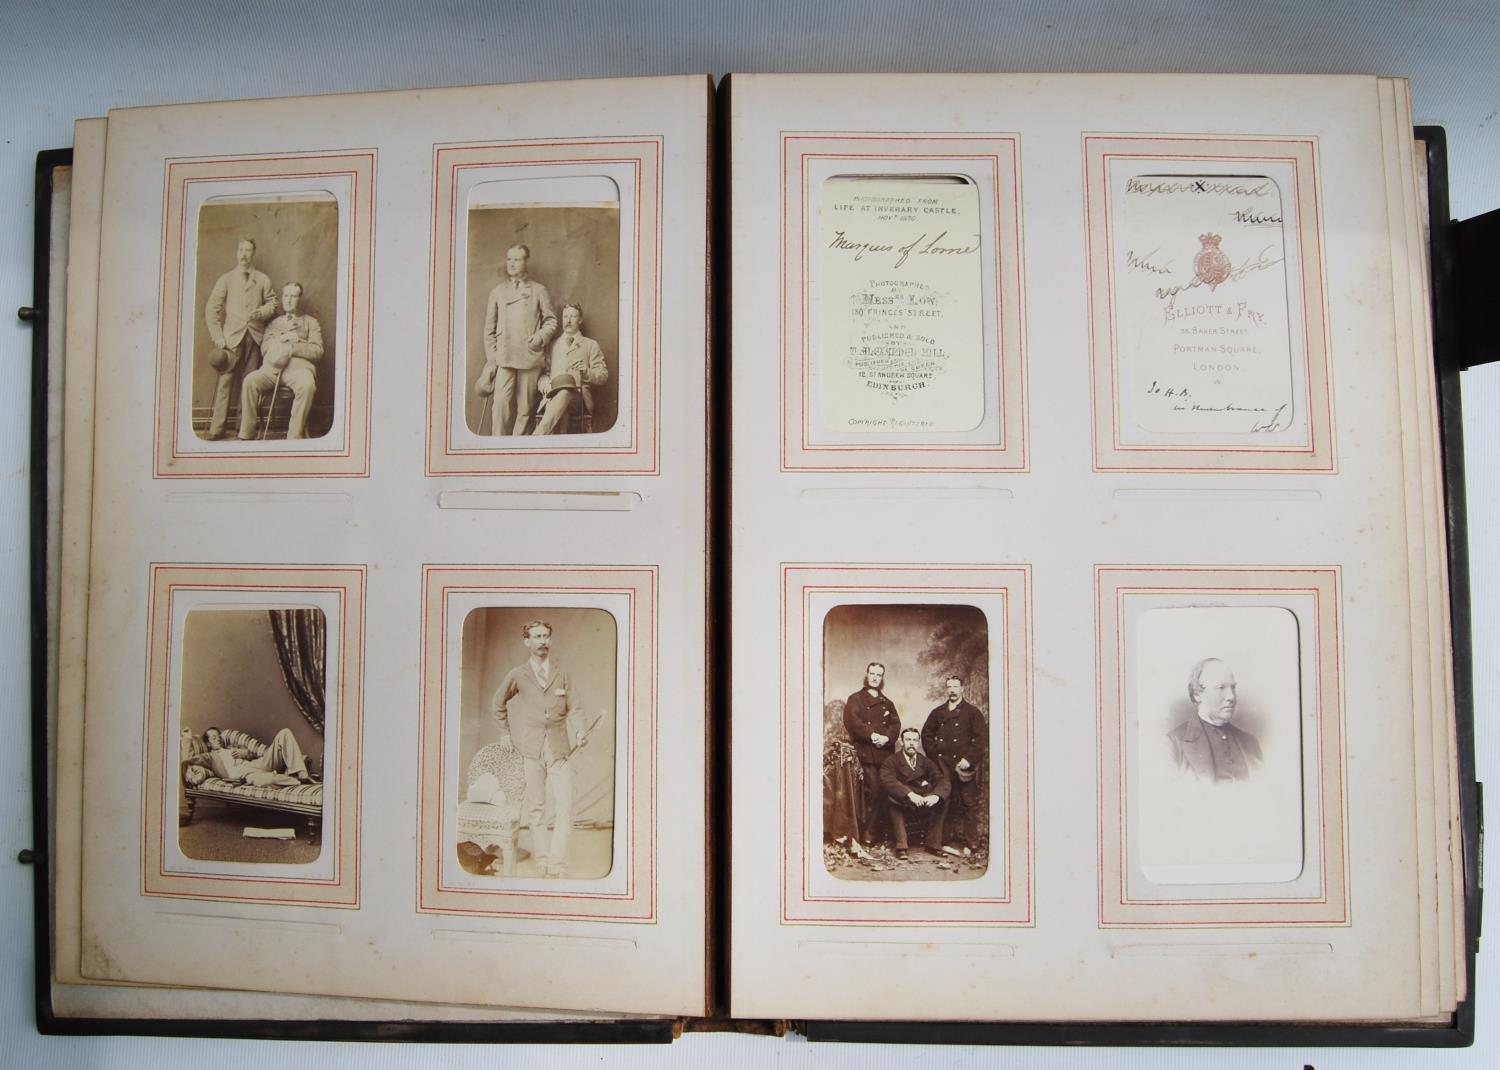 Victorian photograph album belong to Harden Burnley, signed 1870, comprising of royalty, officers - Image 9 of 10